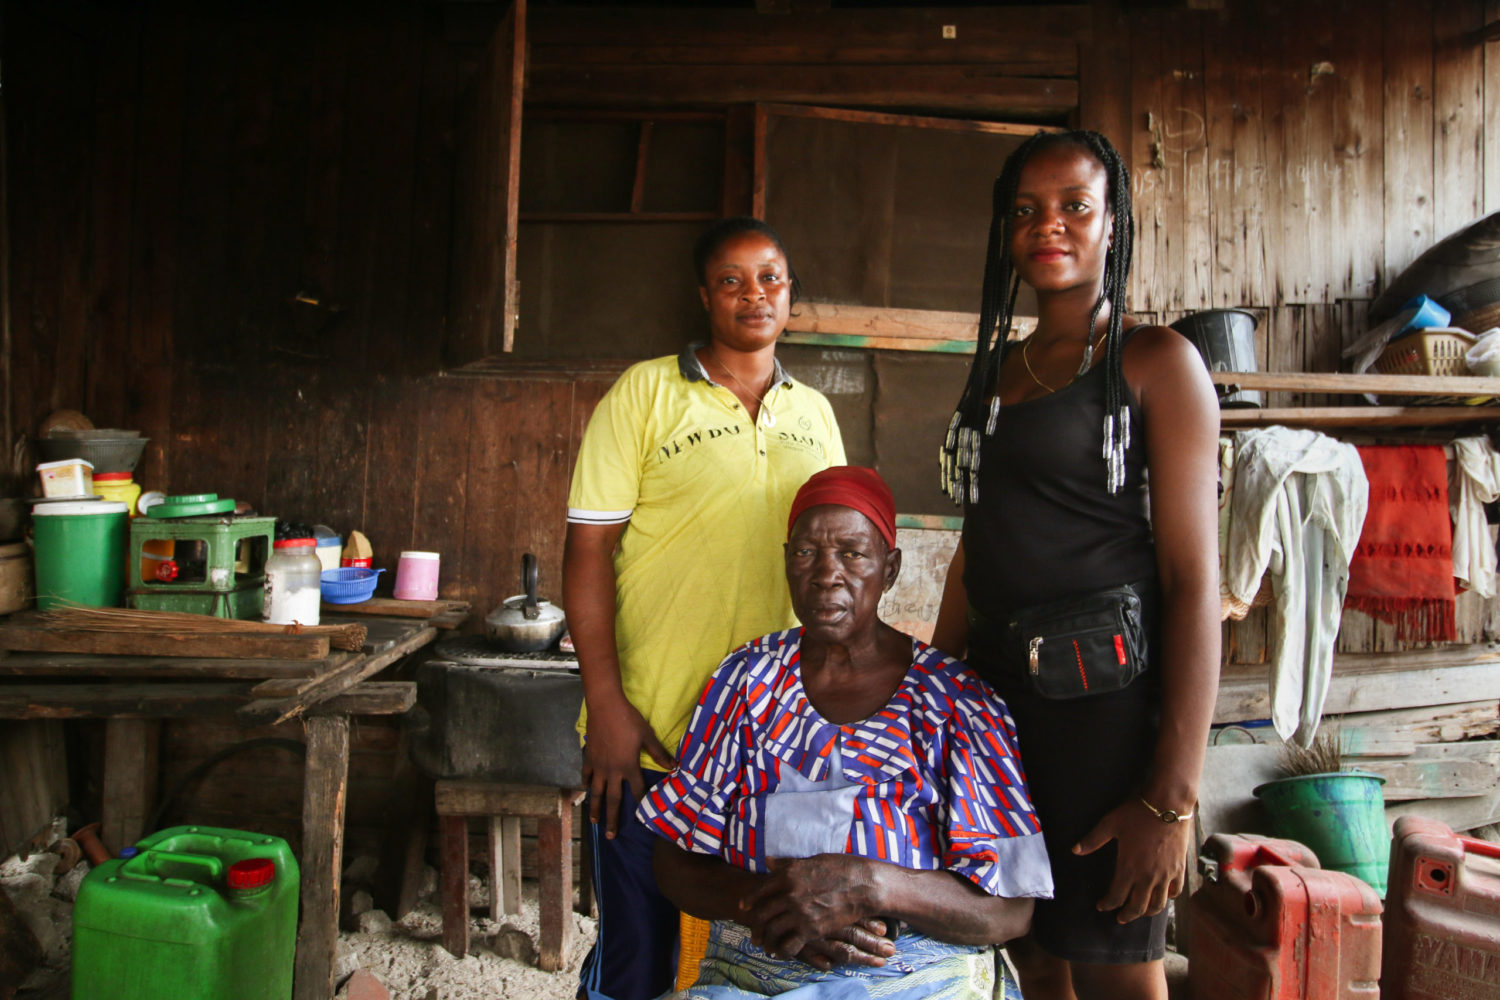 Sagbo Kodji residents Bolanle Taiwo, left, her niece Mariam Azeez, and her mother, Mrs. Abidoye Comfort, inside their one-room apartment. [PHOTO CREDIT: Nengi Nelson]